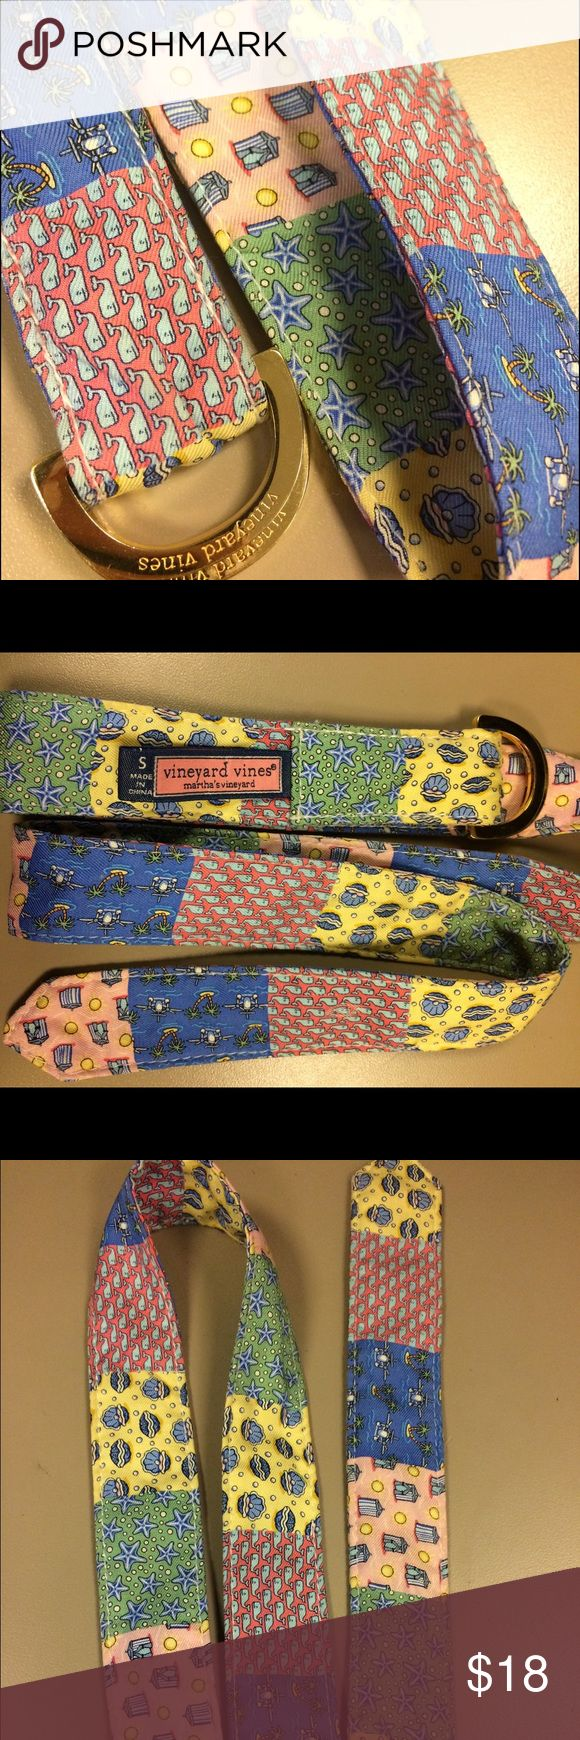 Vineyard Vines Preppy Patchwork Belt w Gold Ring Vineyard Vines Preppy Patchwork Belt w Gold Ring. Women's Size Small. Super cute! Great condition. Vineyard Vines Accessories Belts